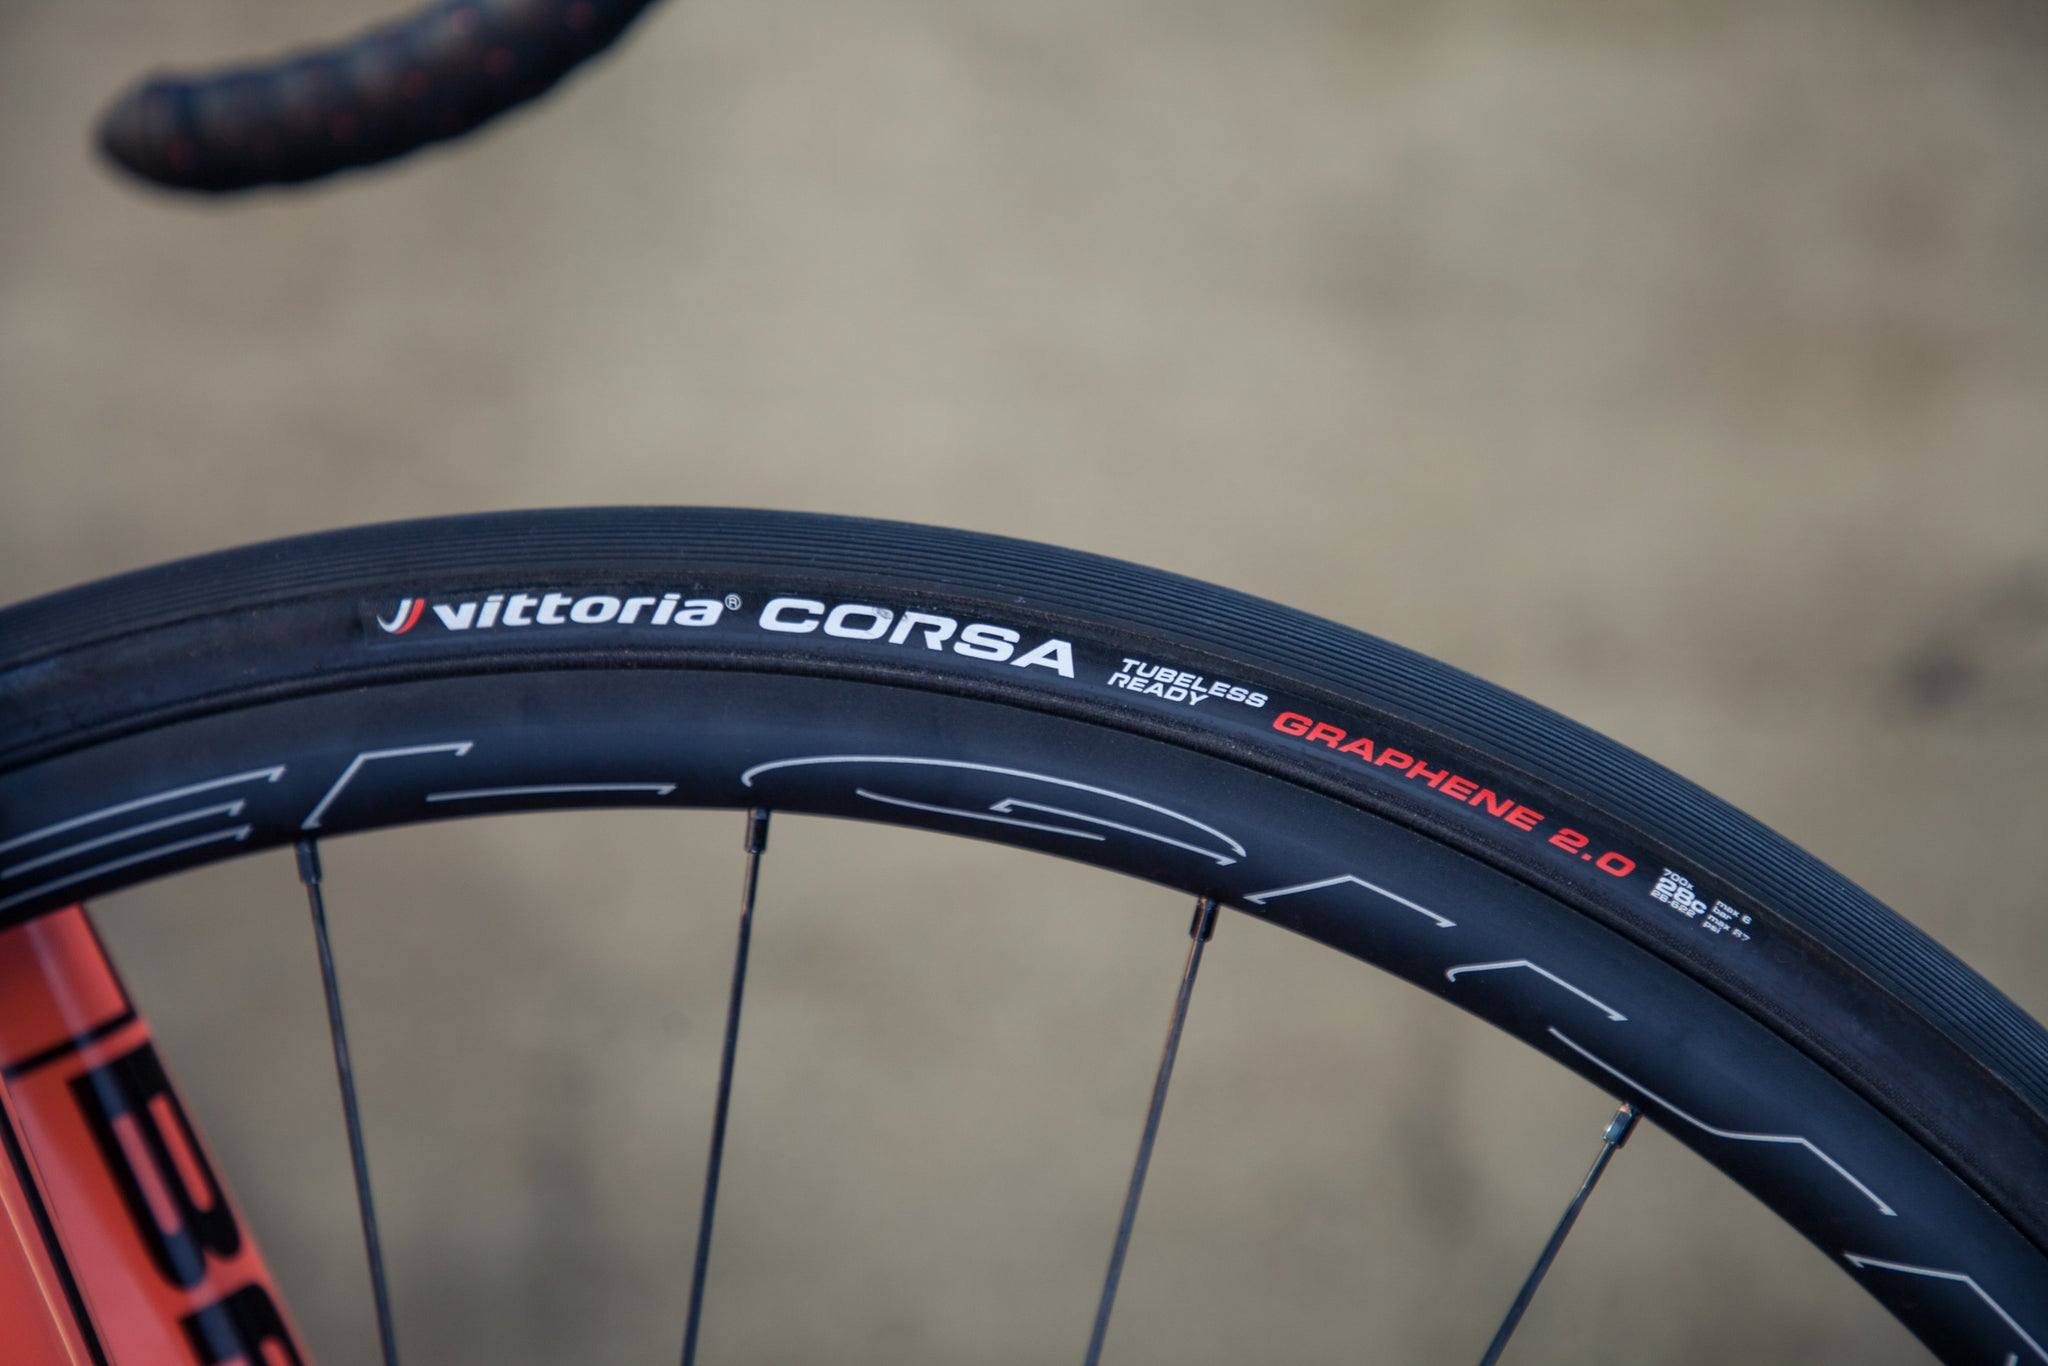 baum orbis strawberry rum punch hed rim vittoria tire